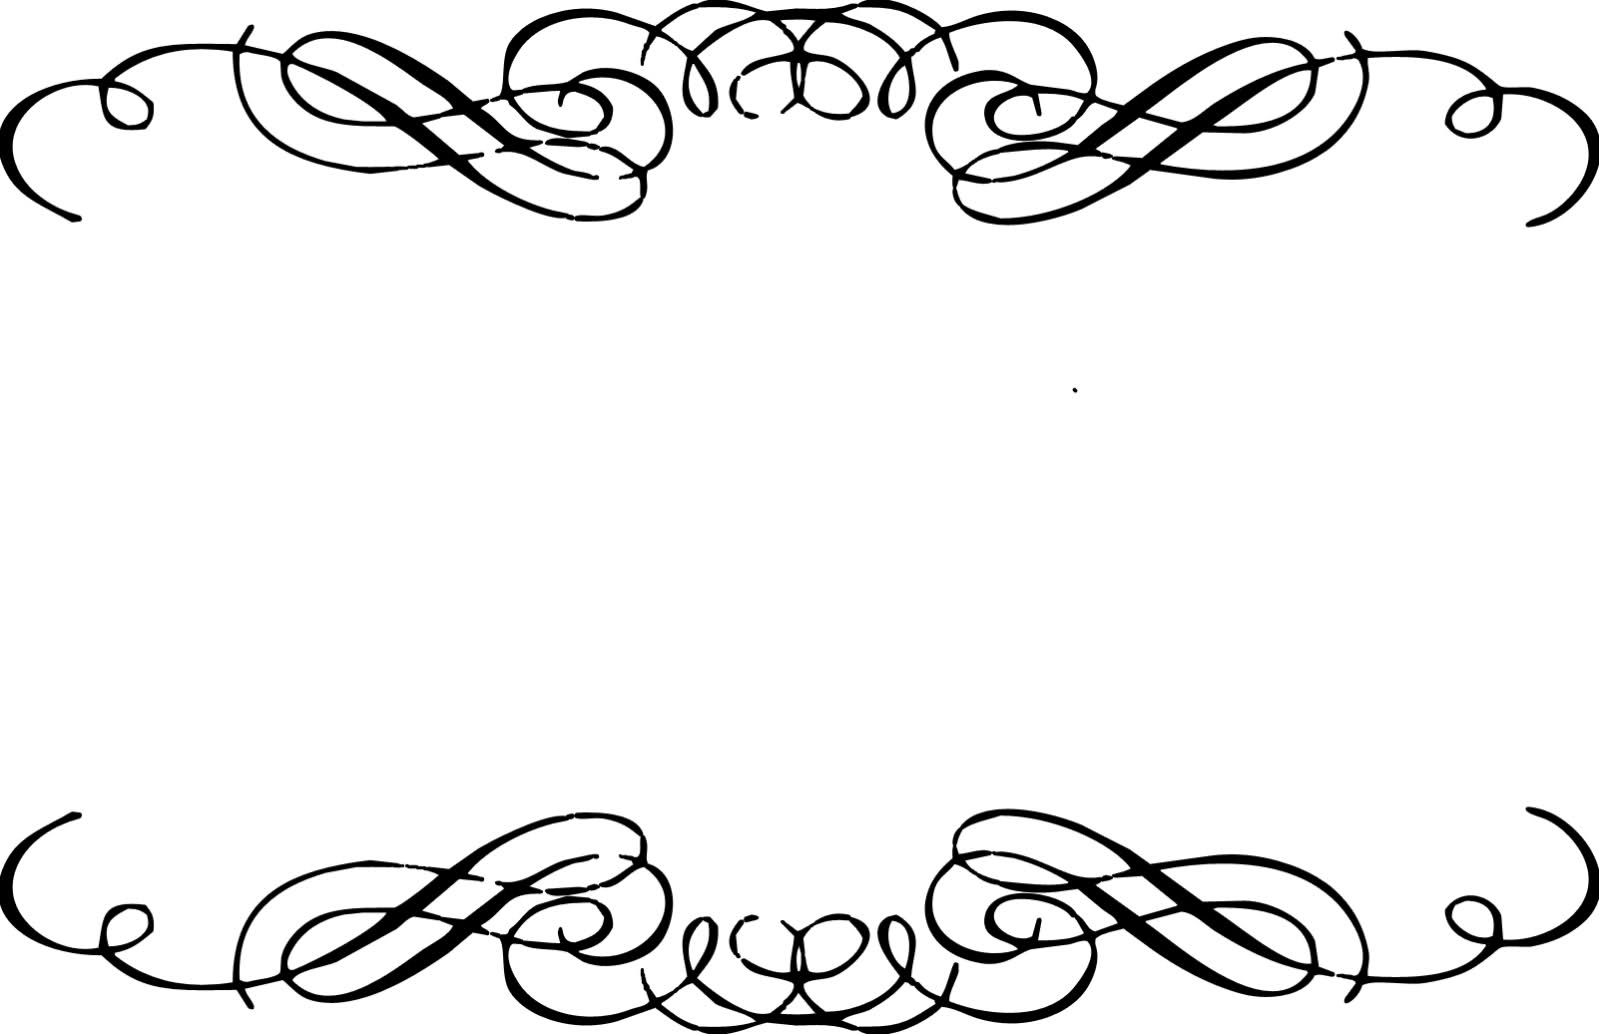 Fancy Corner Scroll Clip Art .-Fancy corner scroll clip art .-6